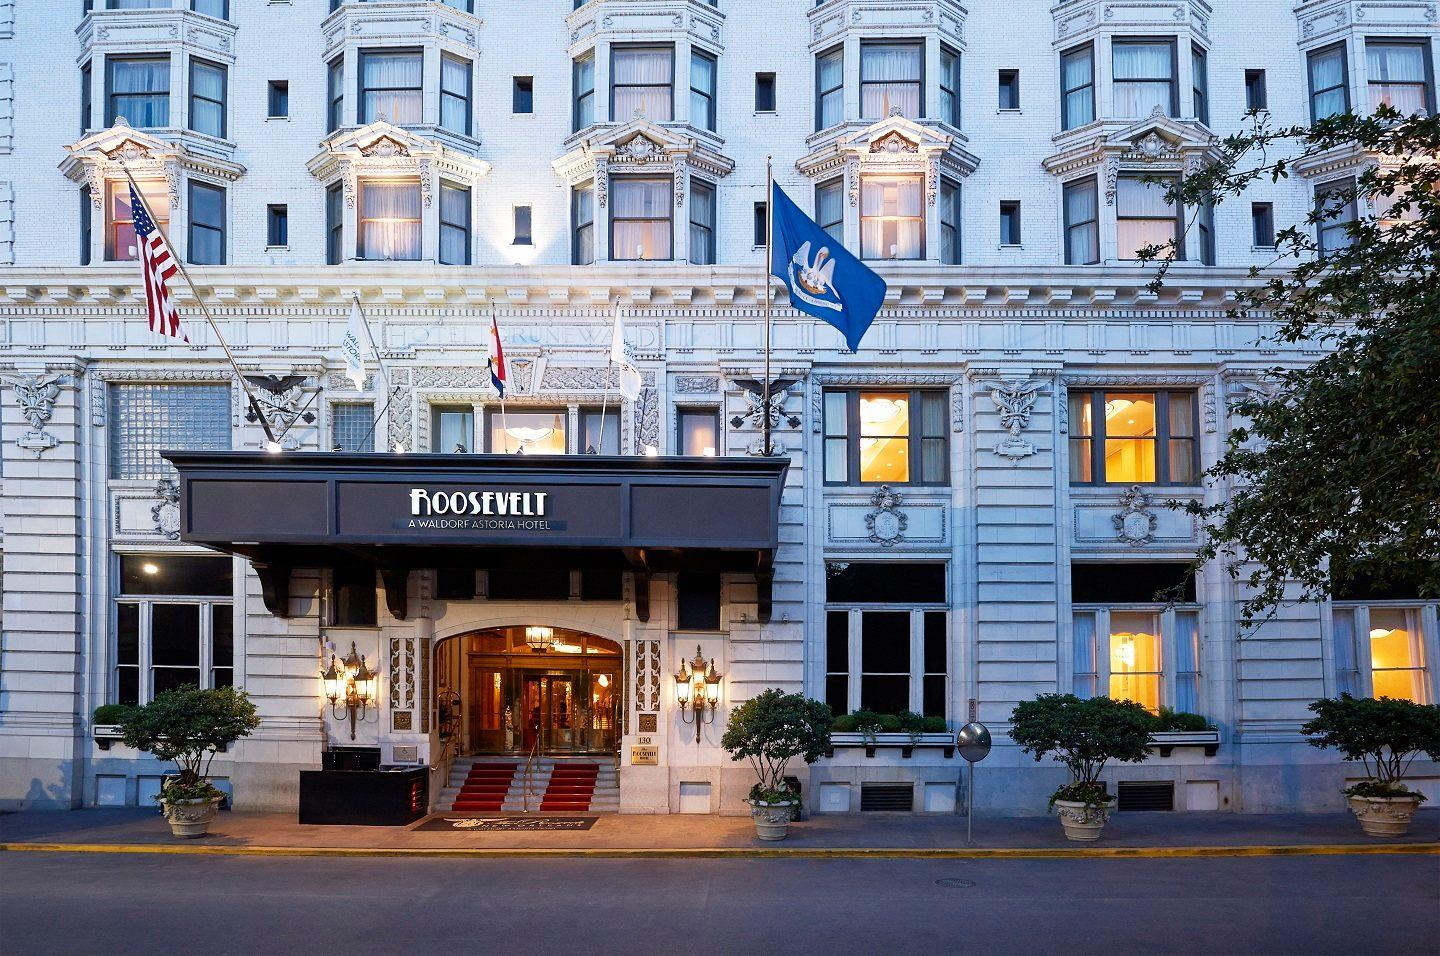 The Roosevelt New Orleans Promo Codes And Discount Offers